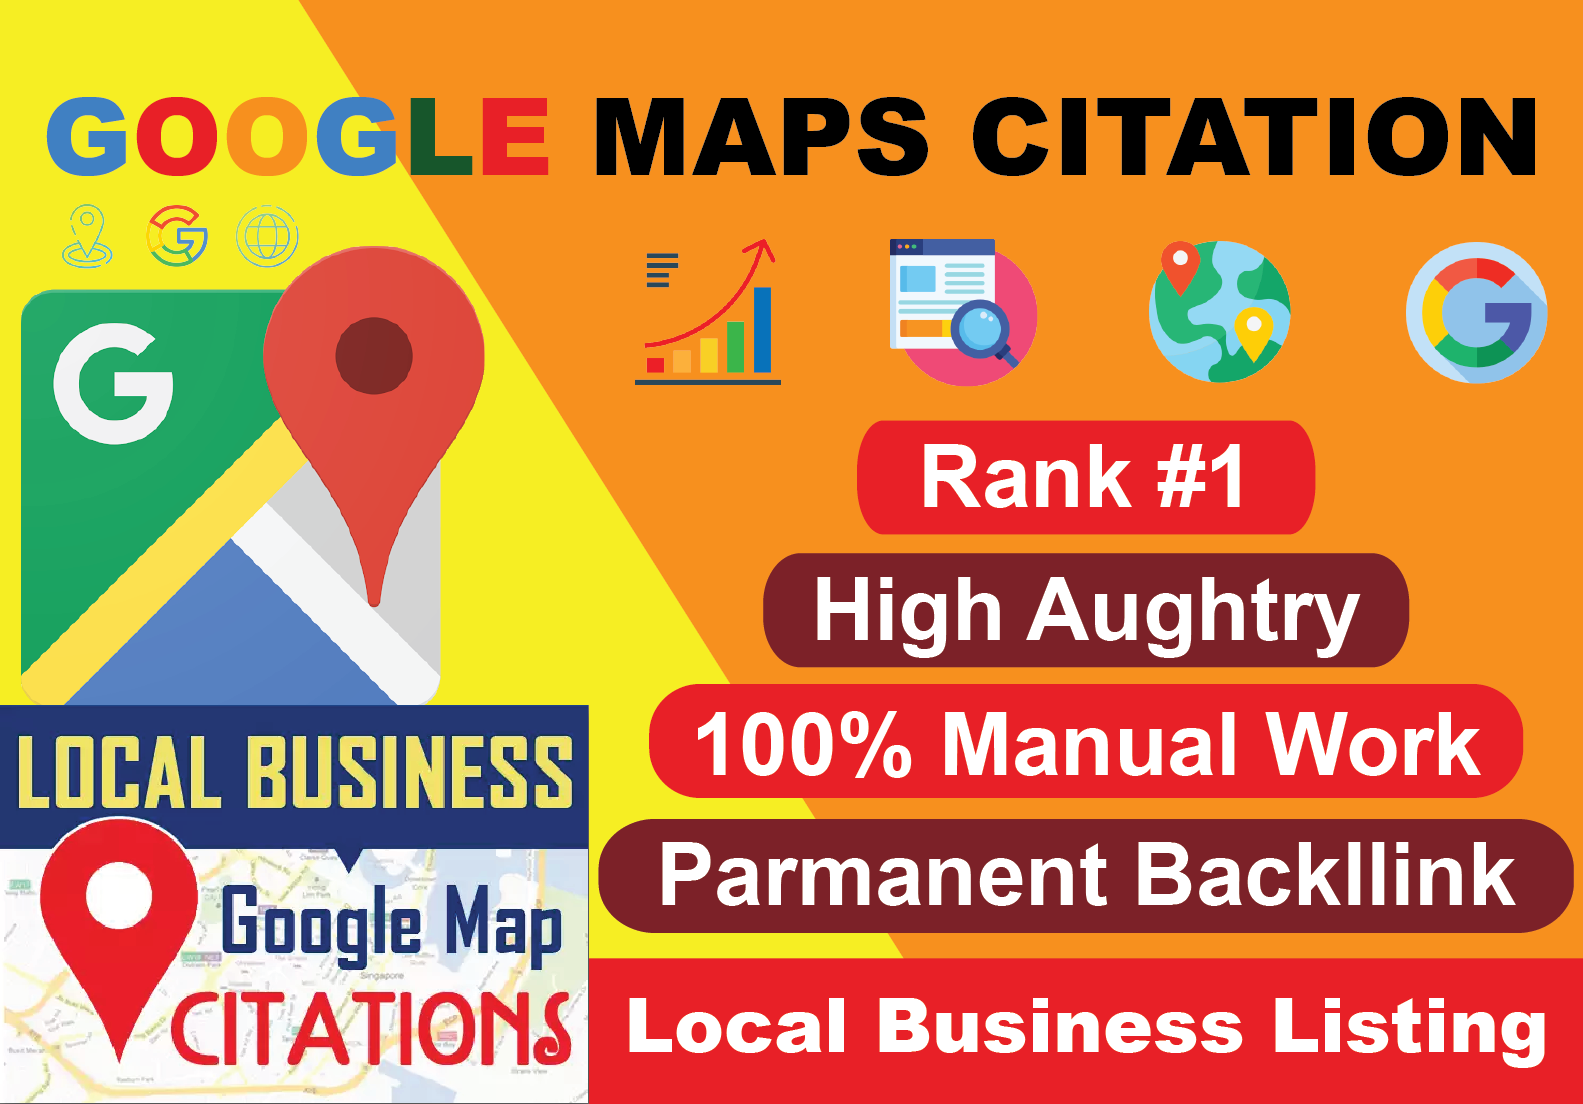 200 Google Maps Citation Create Manually with your Business Information promote by local SEO service